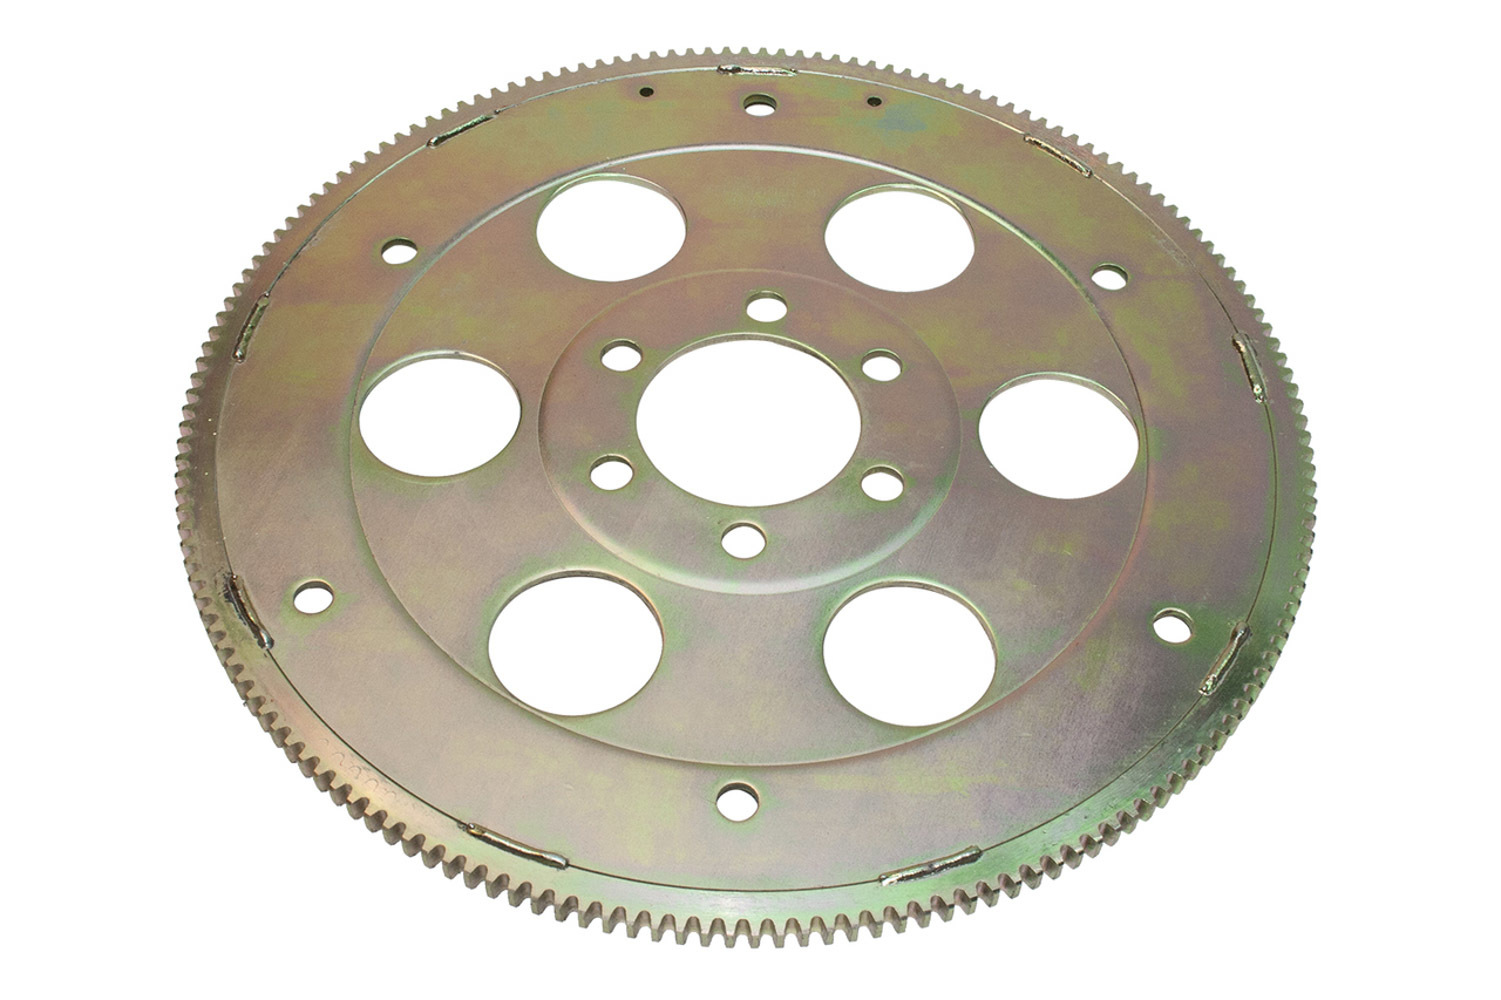 PRW Industries 1845501 Flexplate, 166 Tooth, SFI 29.1, Chromoly, Cadmium, Internal Balance, Pontiac V8, Each